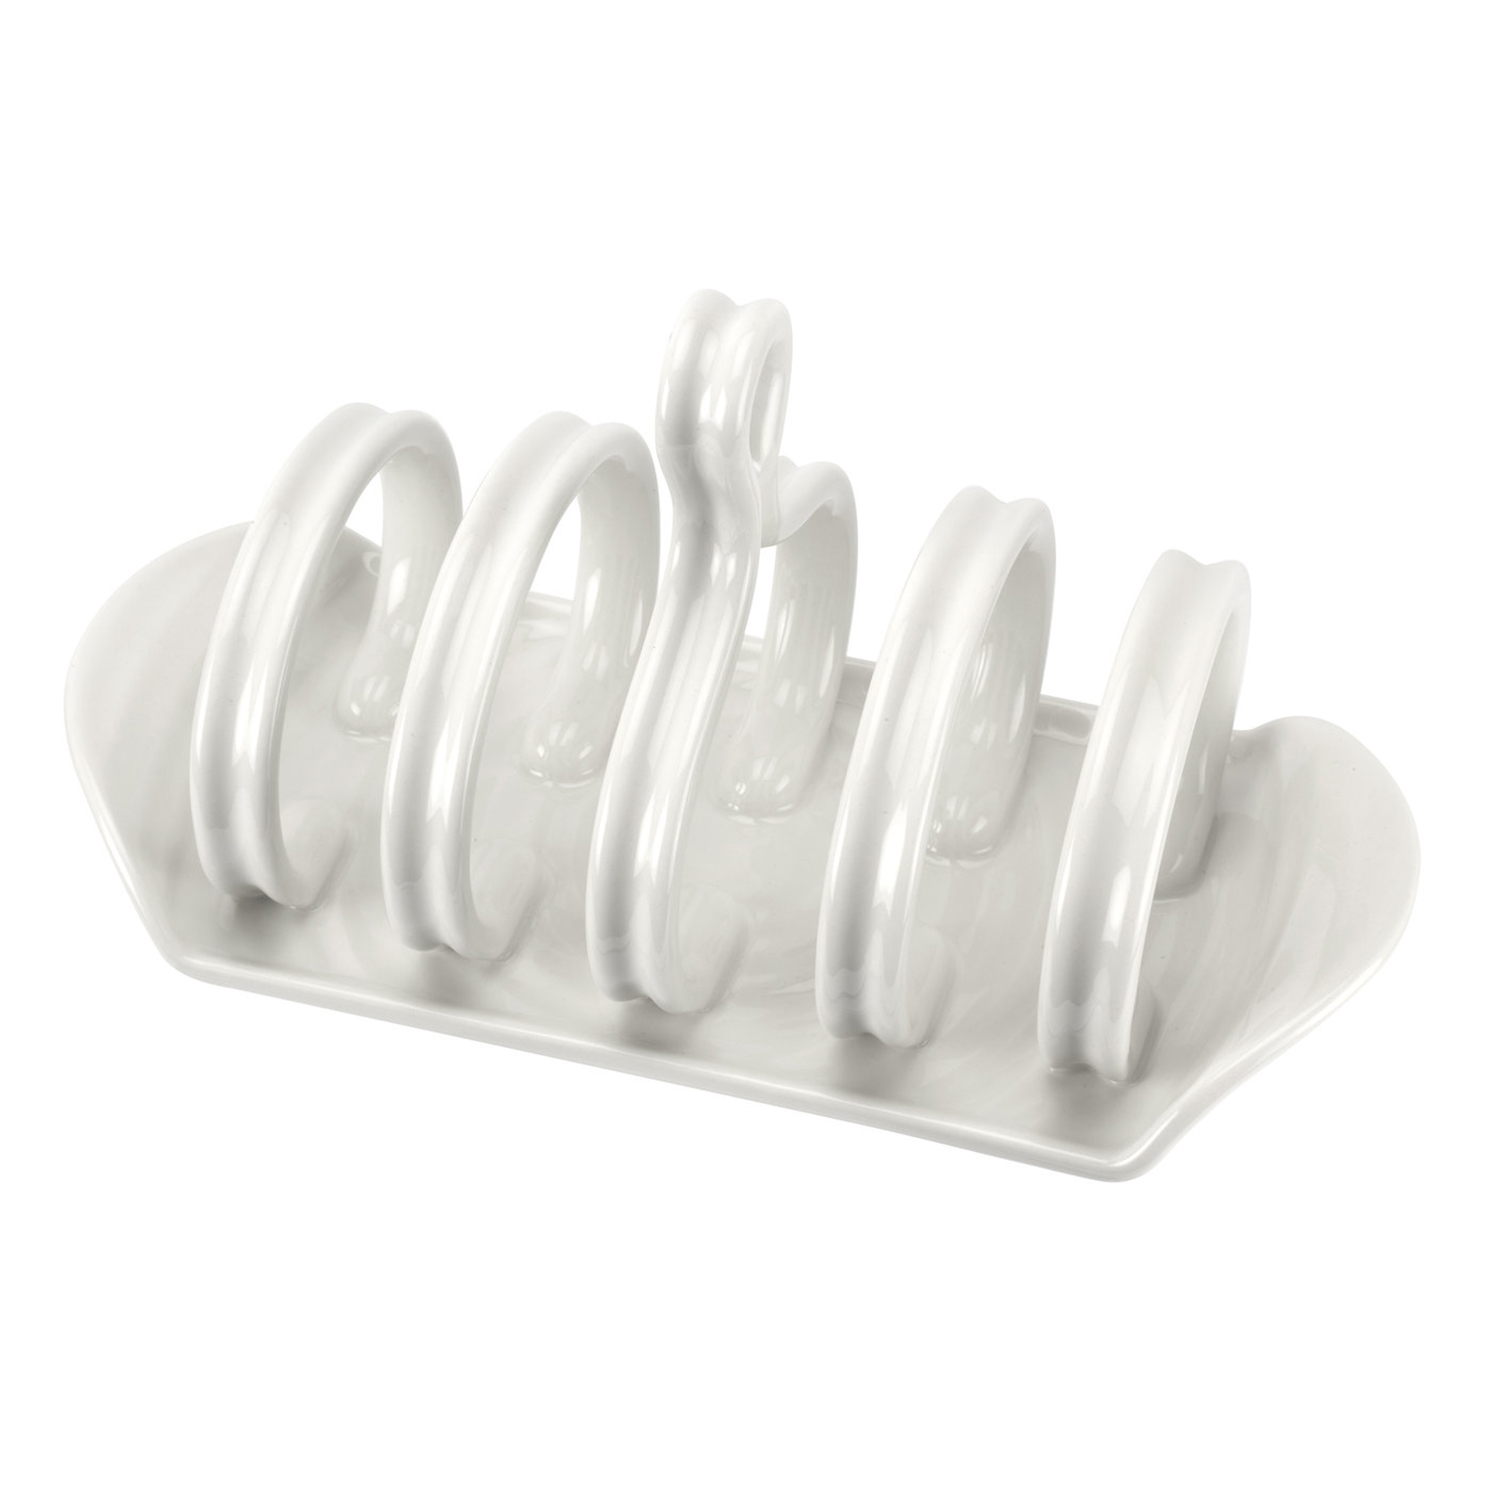 Sophie Conran for Portmeirion – White Toast Rack in Gift Box